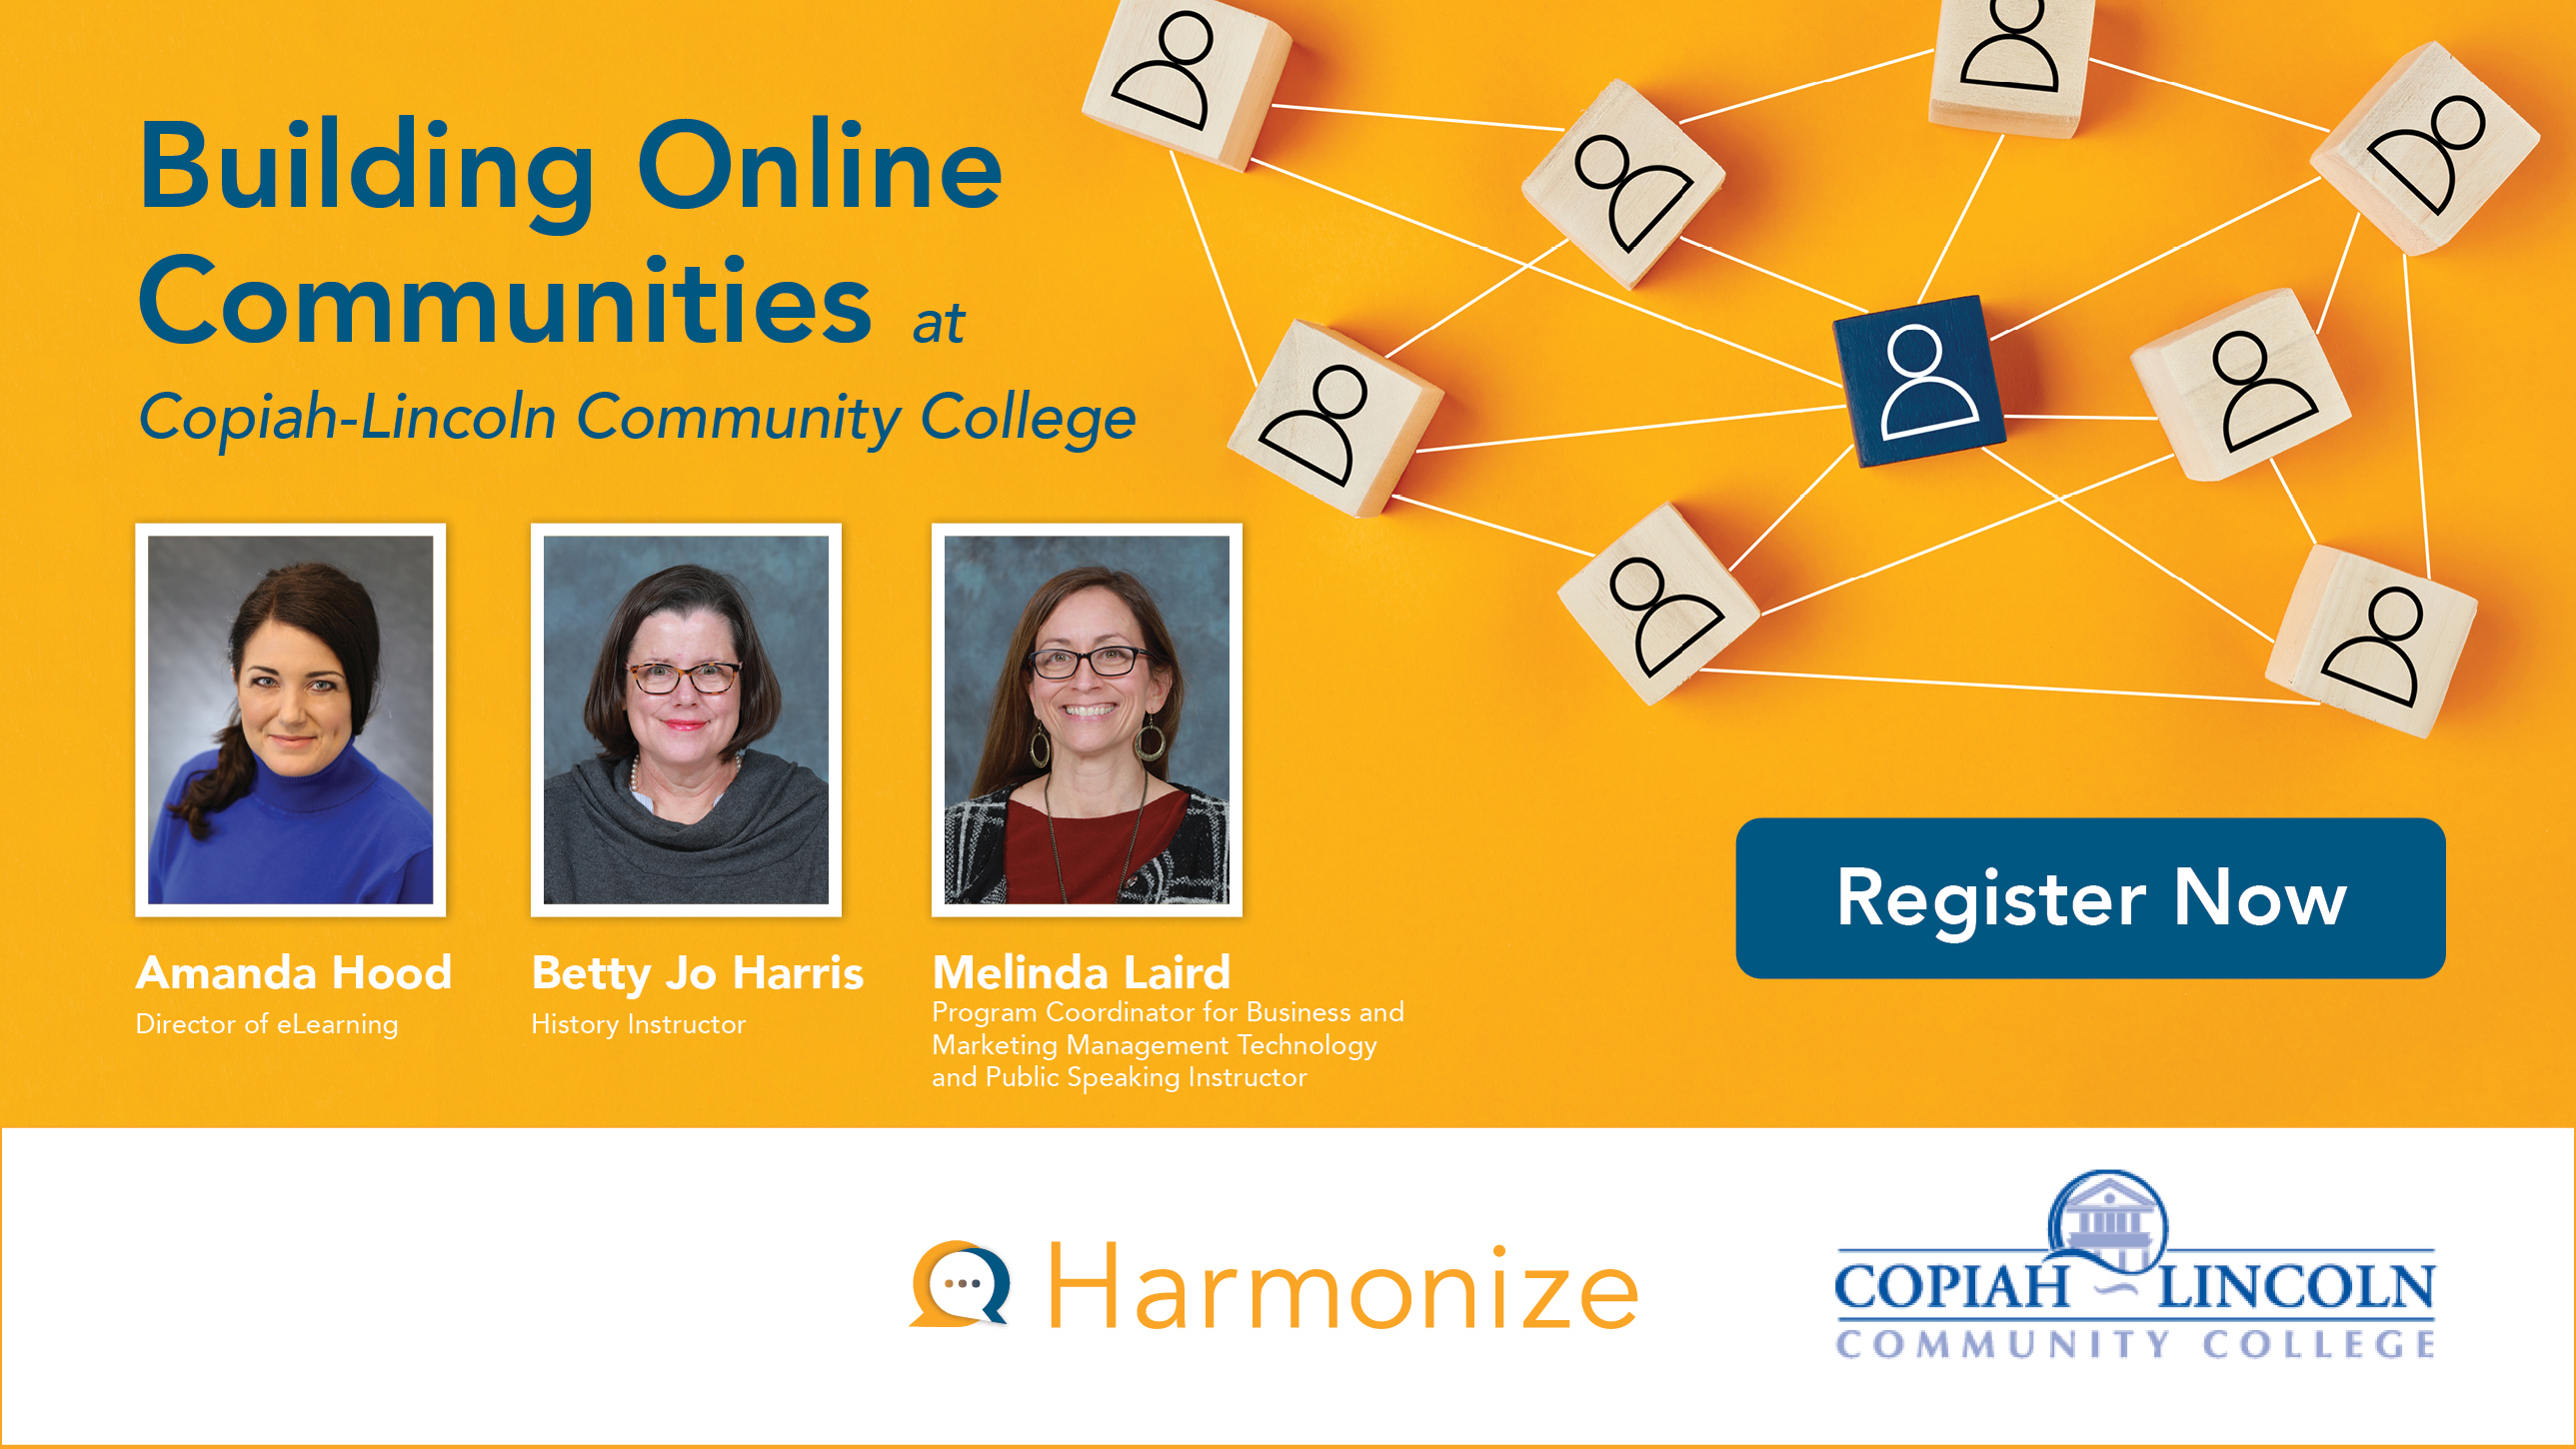 Building Online Communities at Copiah-Lincoln Community College